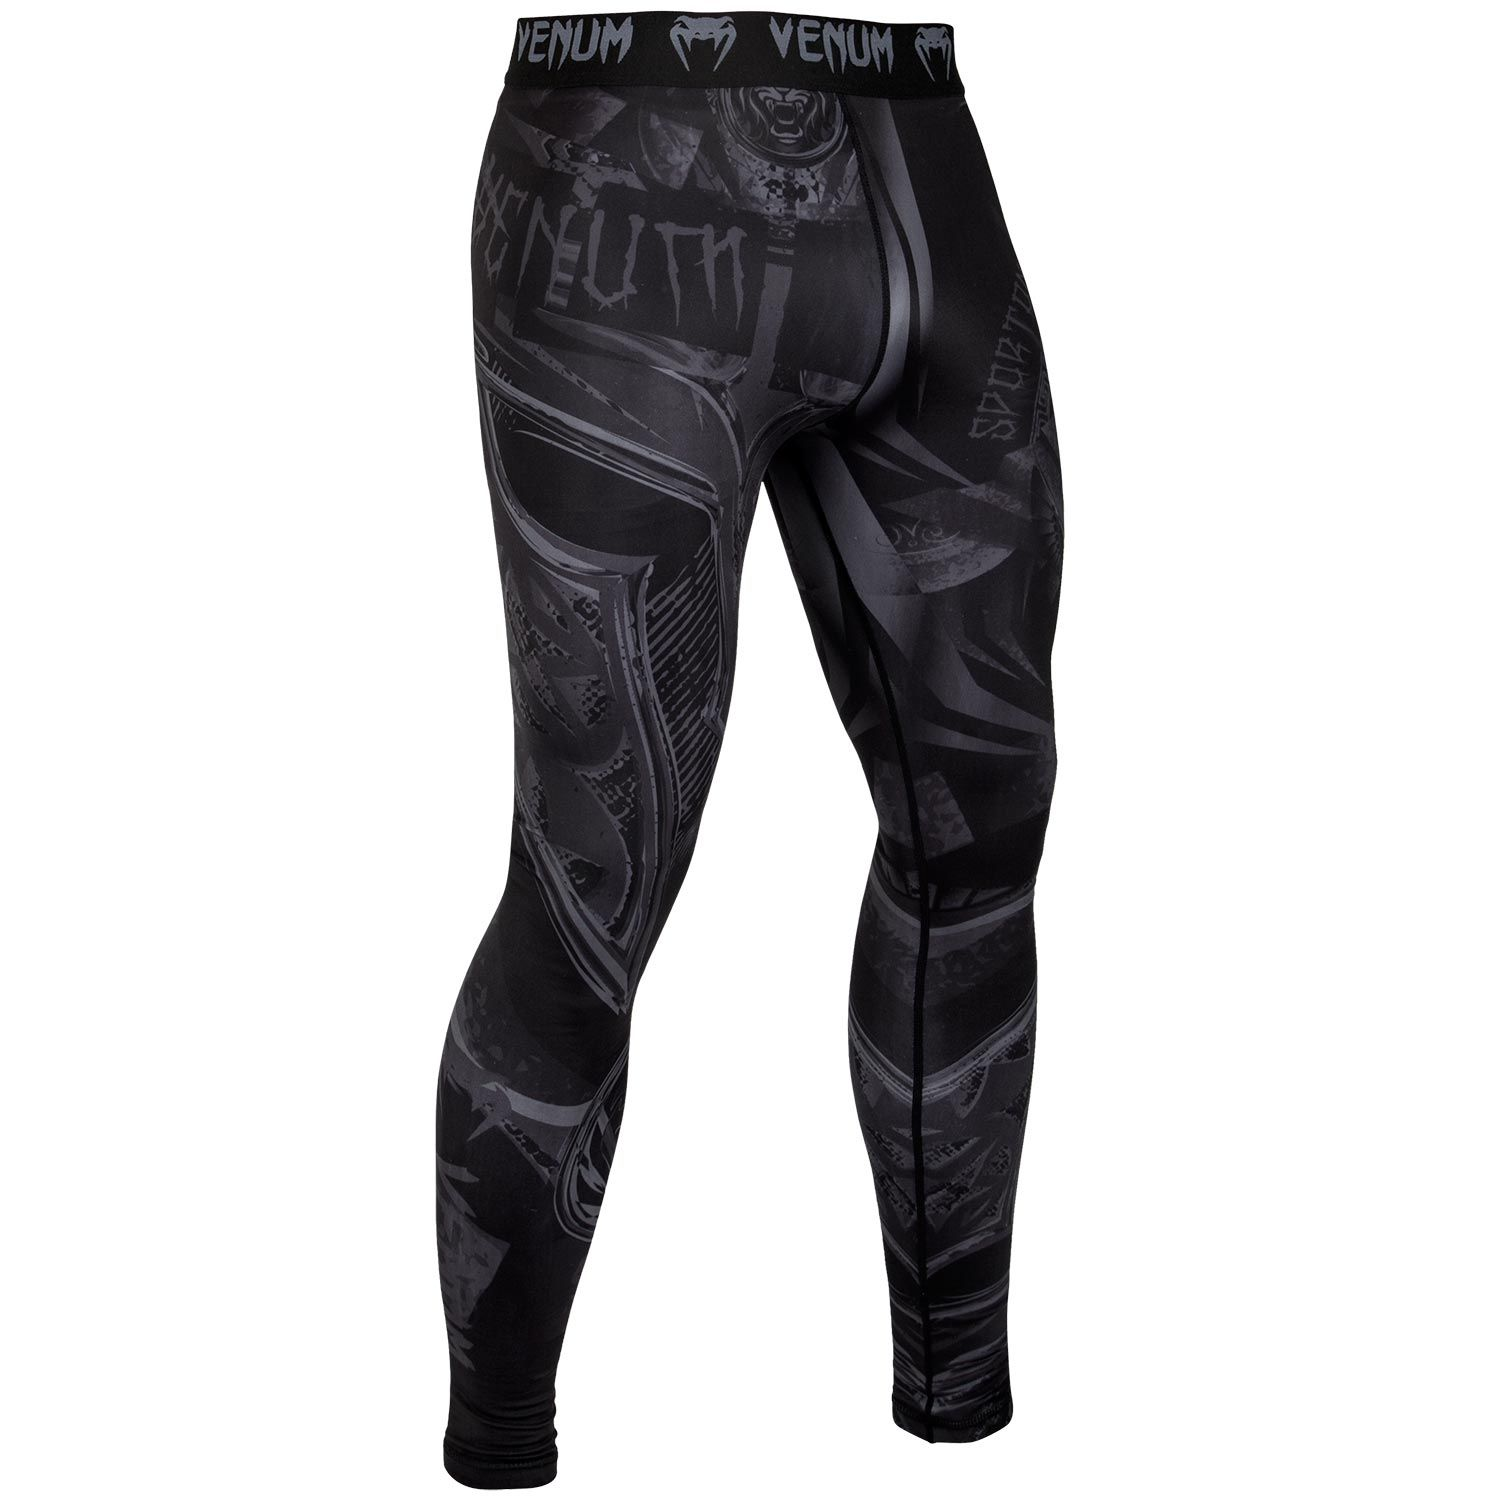 Venum Gladiator 3.0 Compression Tights - Black/Black